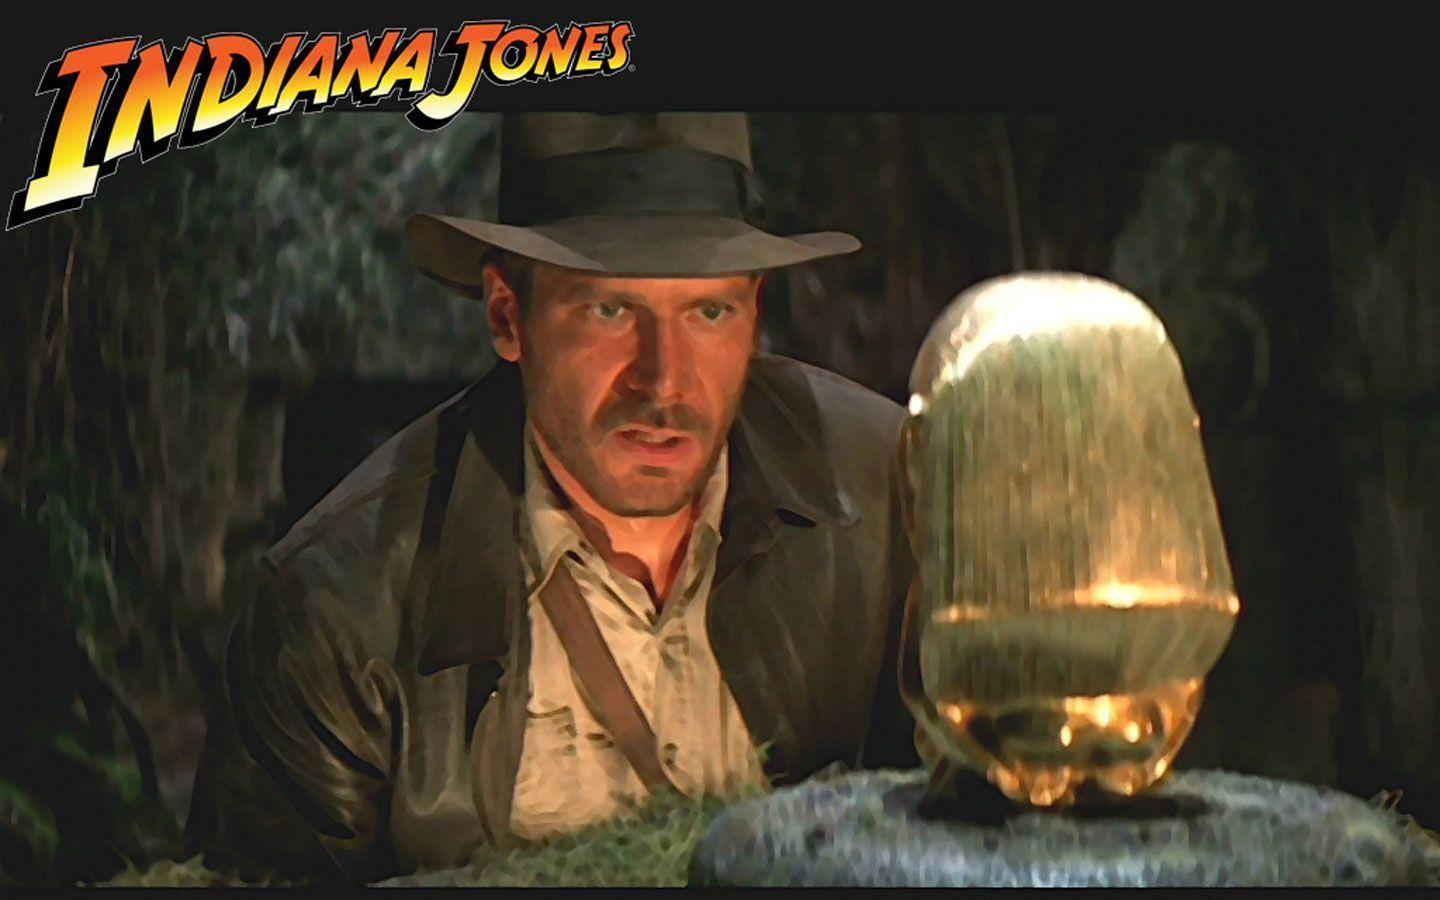 indiana jones adventure wallpaper - photo #5